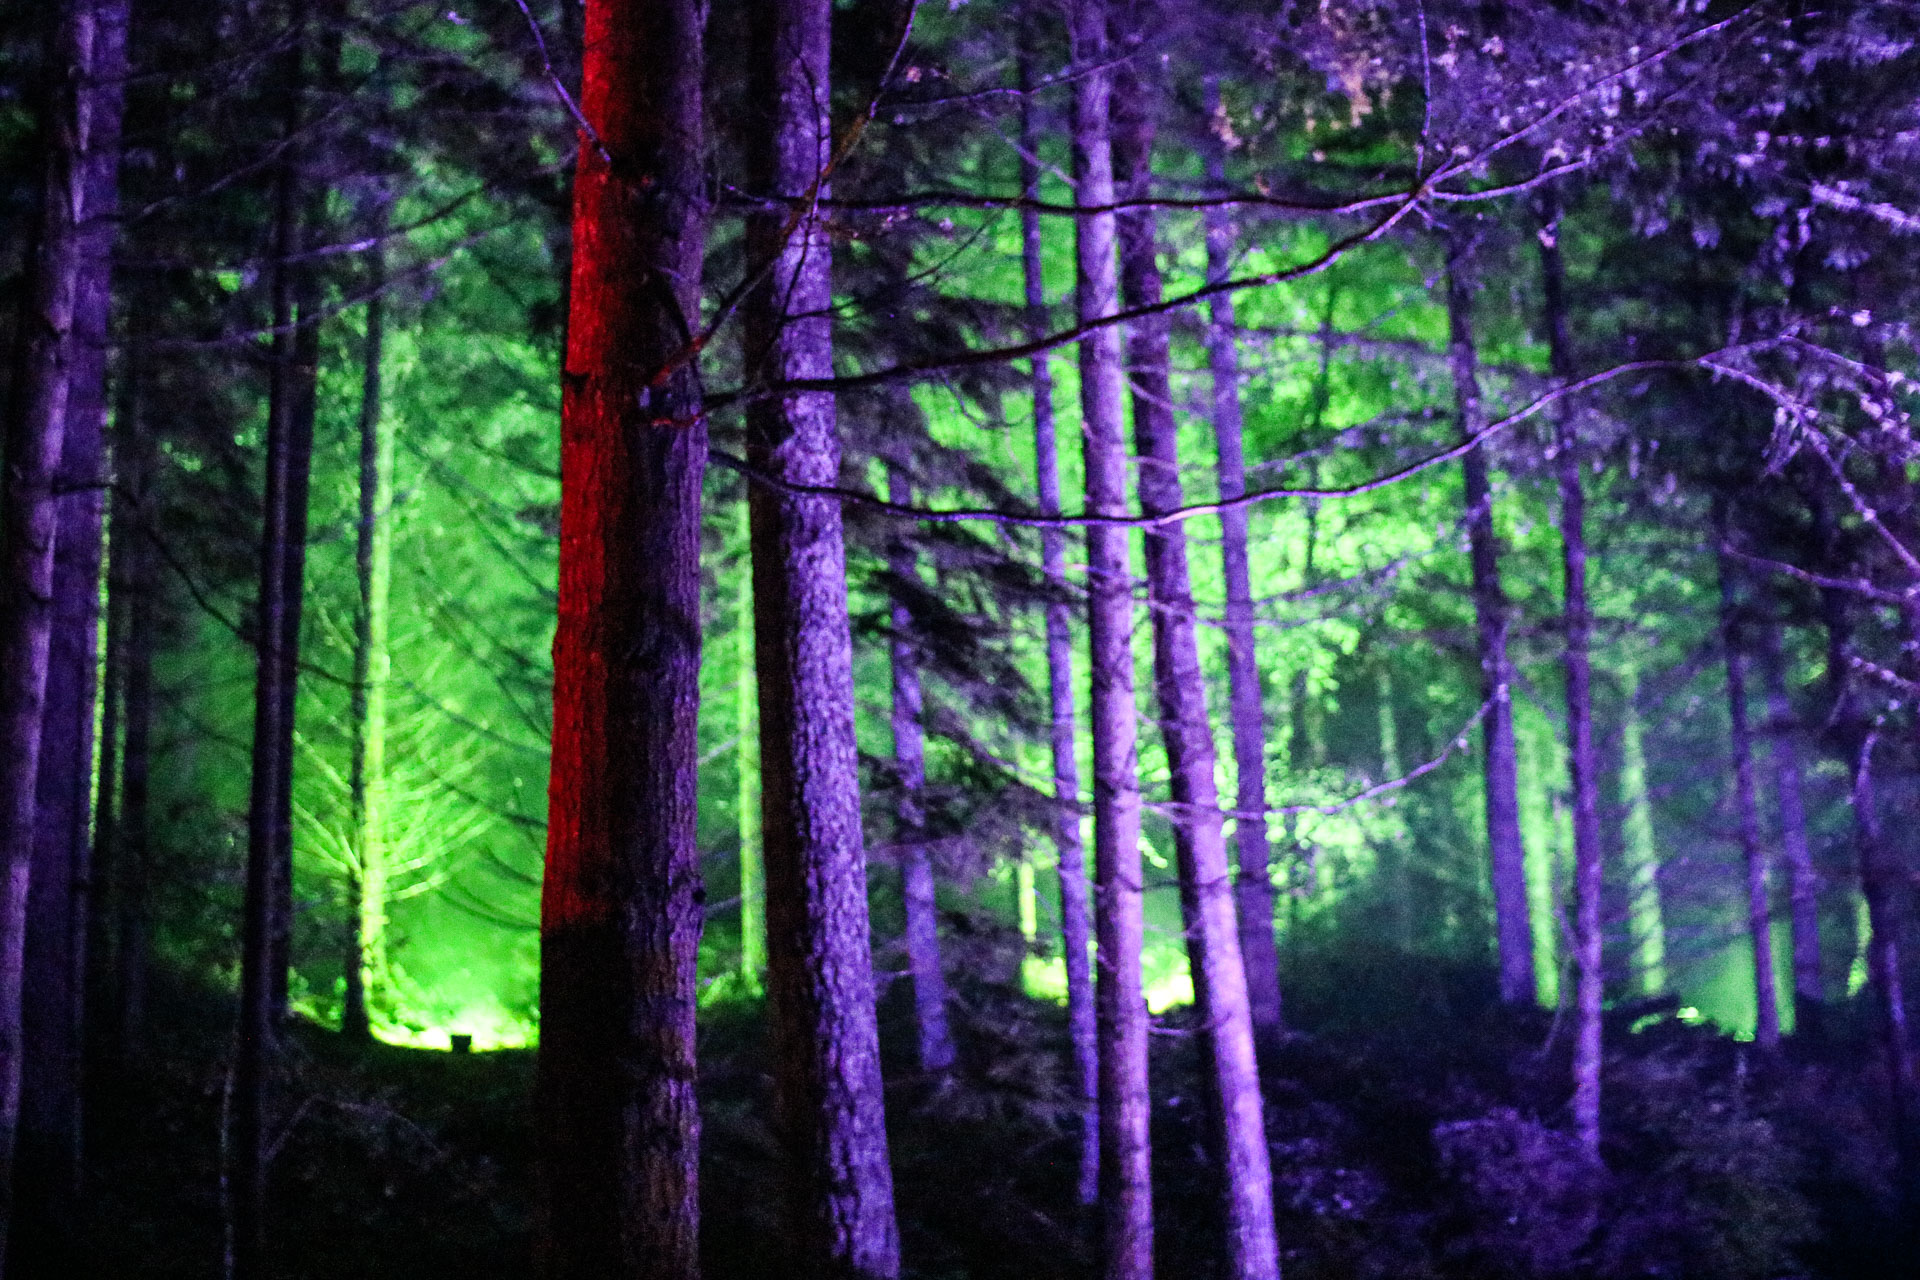 enchanted forest pitlochry scotland